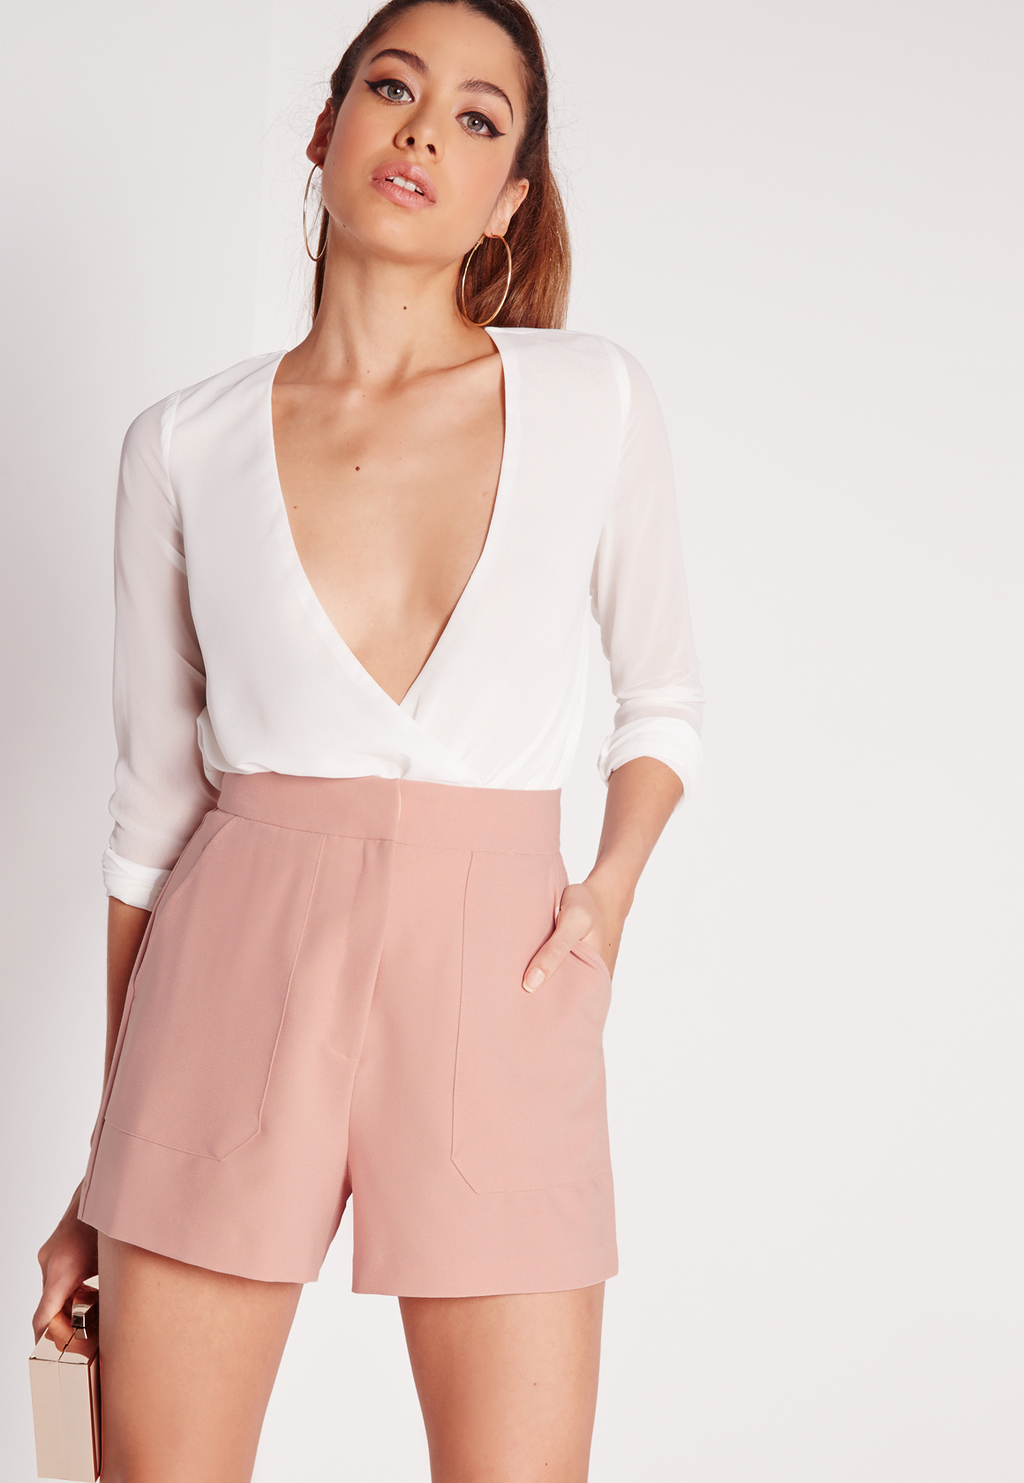 Front Pocket Tailored Shorts Pink, Pink - waist: high rise; predominant colour: blush; occasions: evening; fibres: viscose/rayon - stretch; pattern type: fabric; pattern: colourblock; texture group: woven light midweight; season: s/s 2016; style: tailored shorts; length: short shorts; fit: slim leg